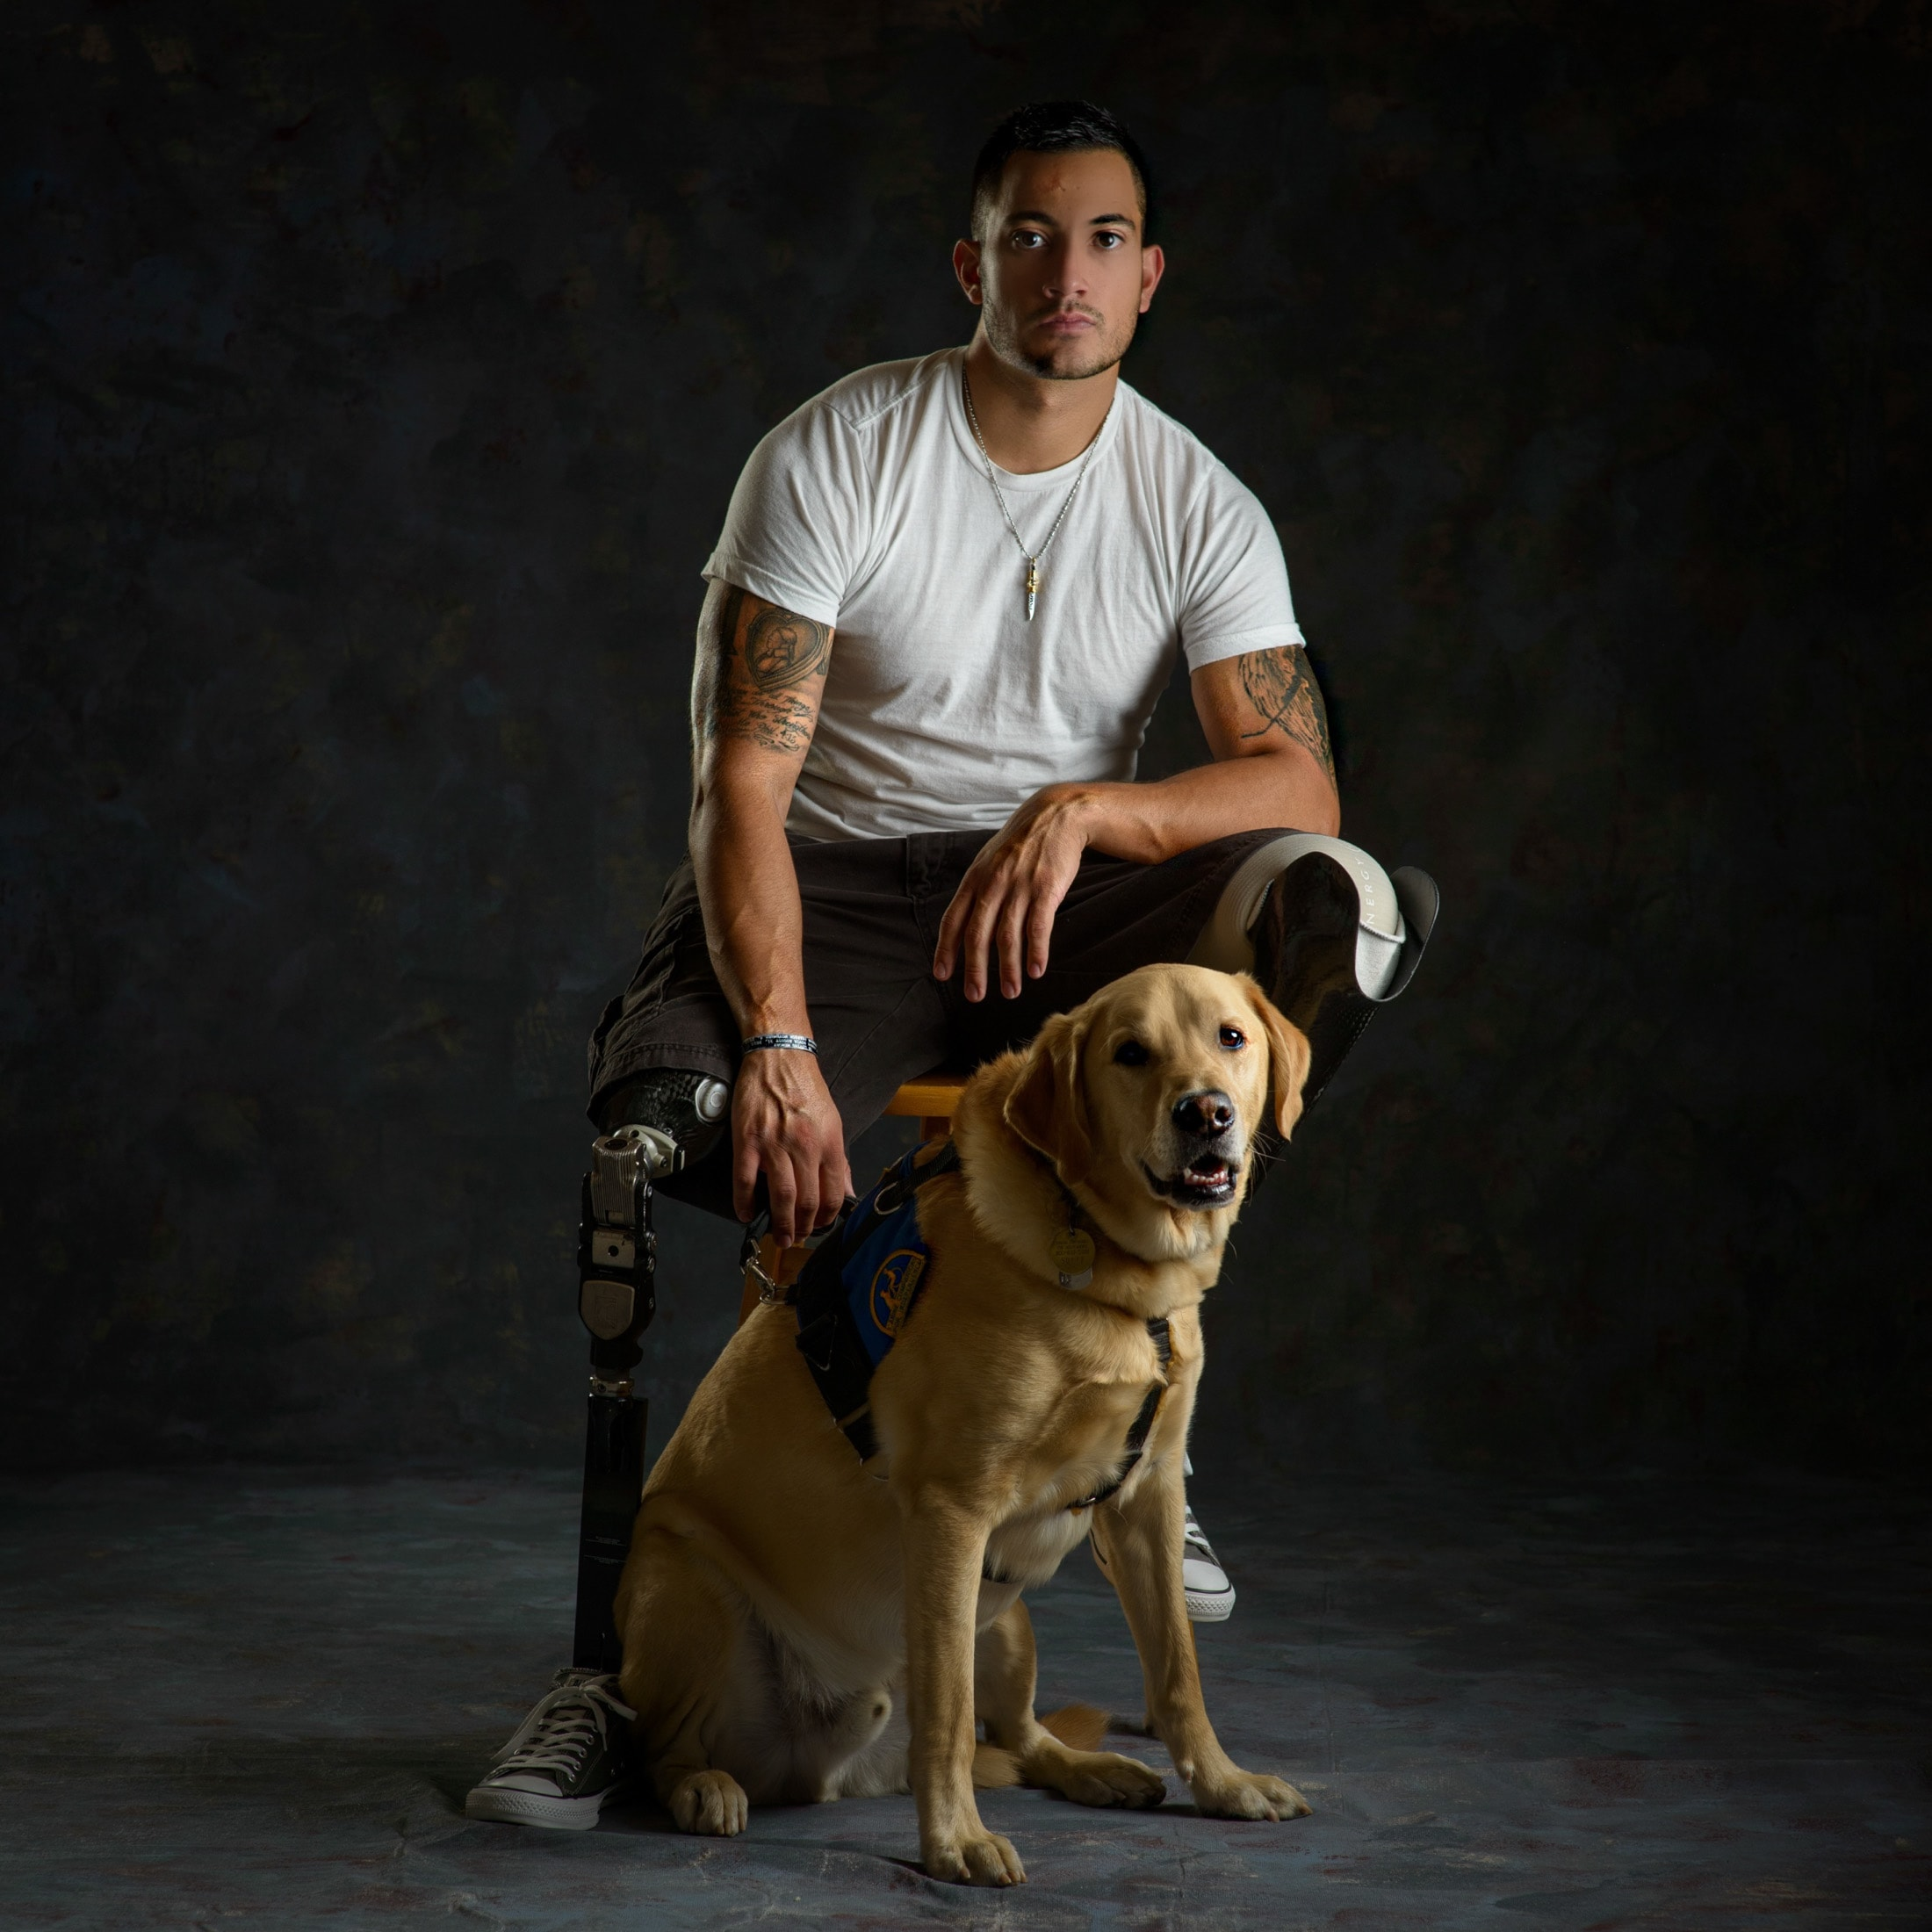 Gabe and Wonka: He's a Marine who was injured during his second deployment to Afghanistan and consequently lost both of his legs. Now Gabe has Service Dog Wonka to help him with daily tasks like retrieving his prosthetic legs from the floor when he's using his wheelchair.